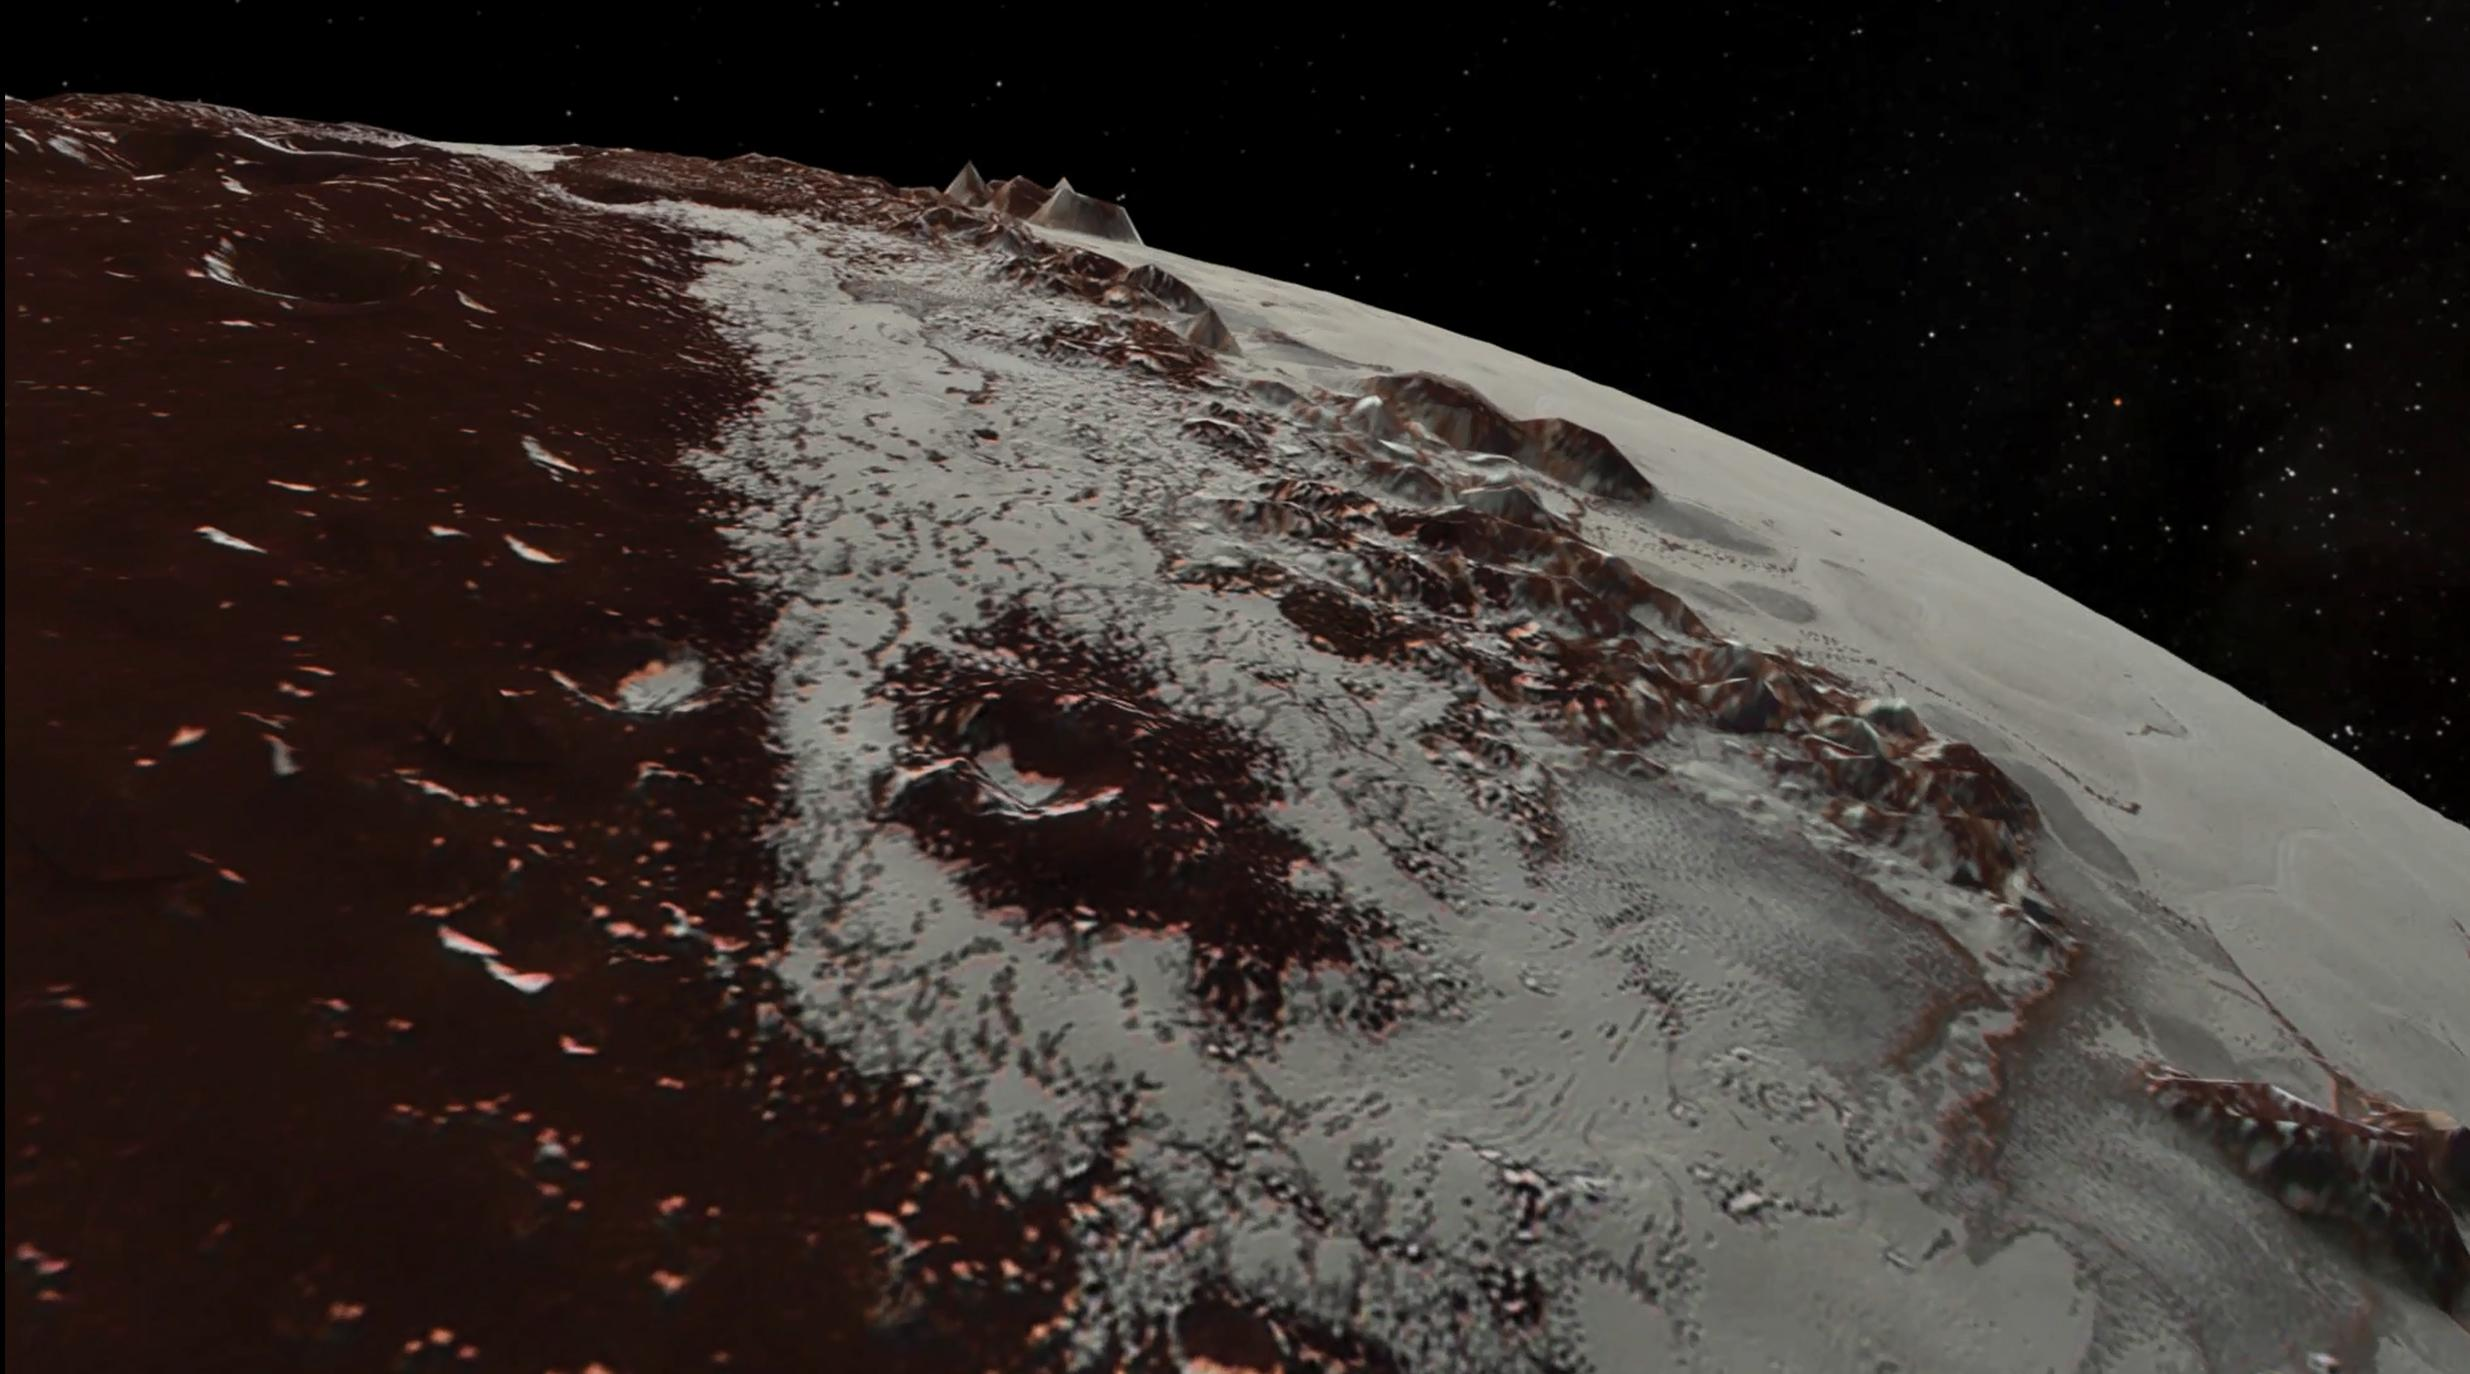 In July 2015, NASA's New Horizons spacecraft sent home the first close-up pictures of Pluto and its moons.